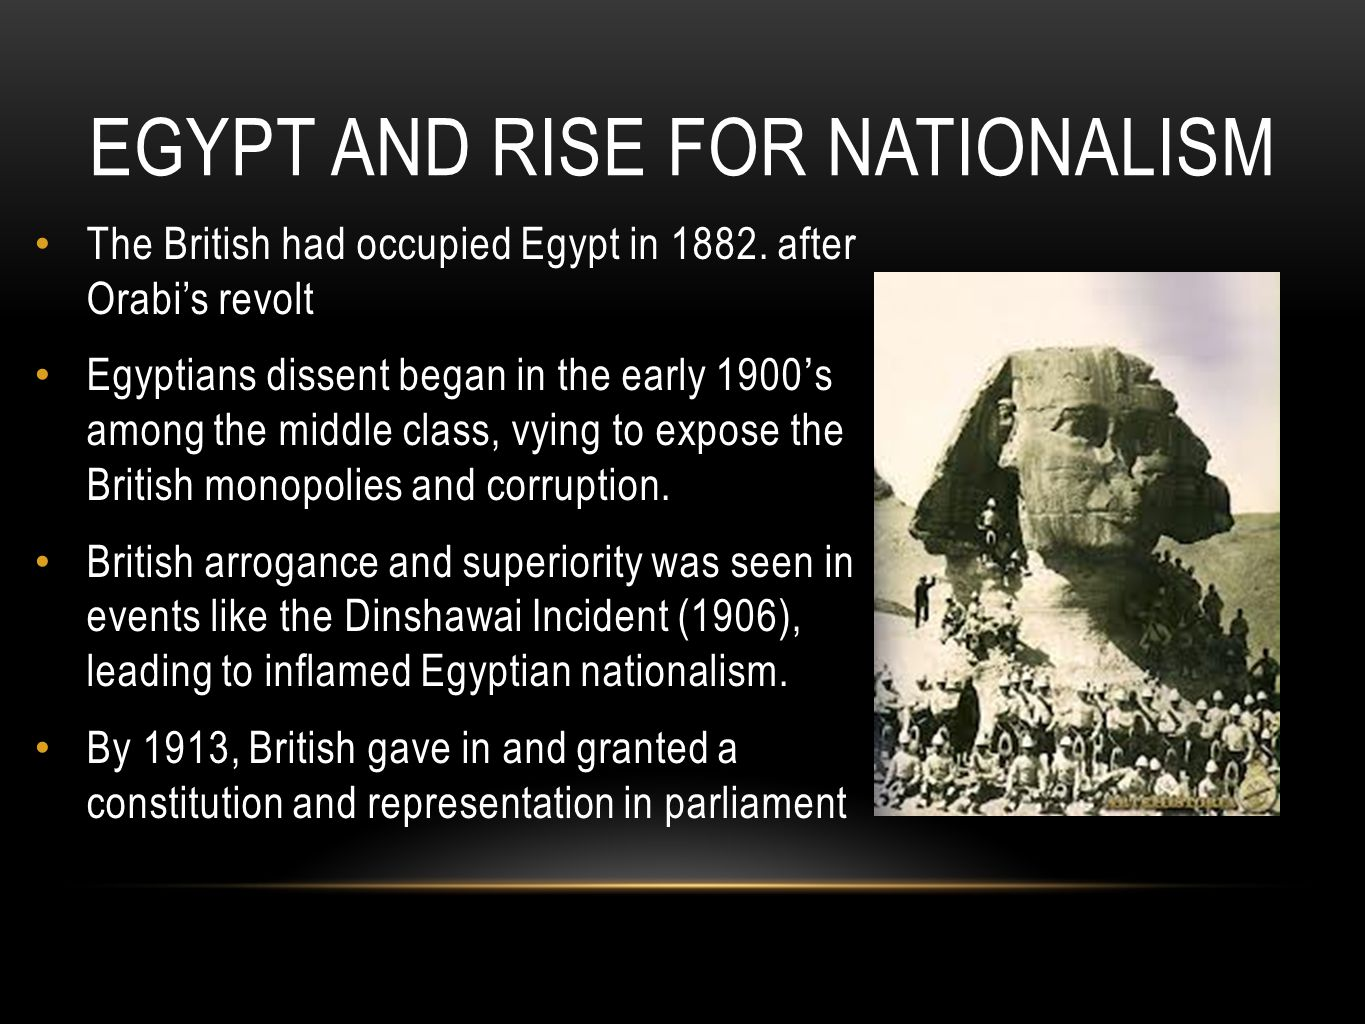 Egypt and rise for nationalism